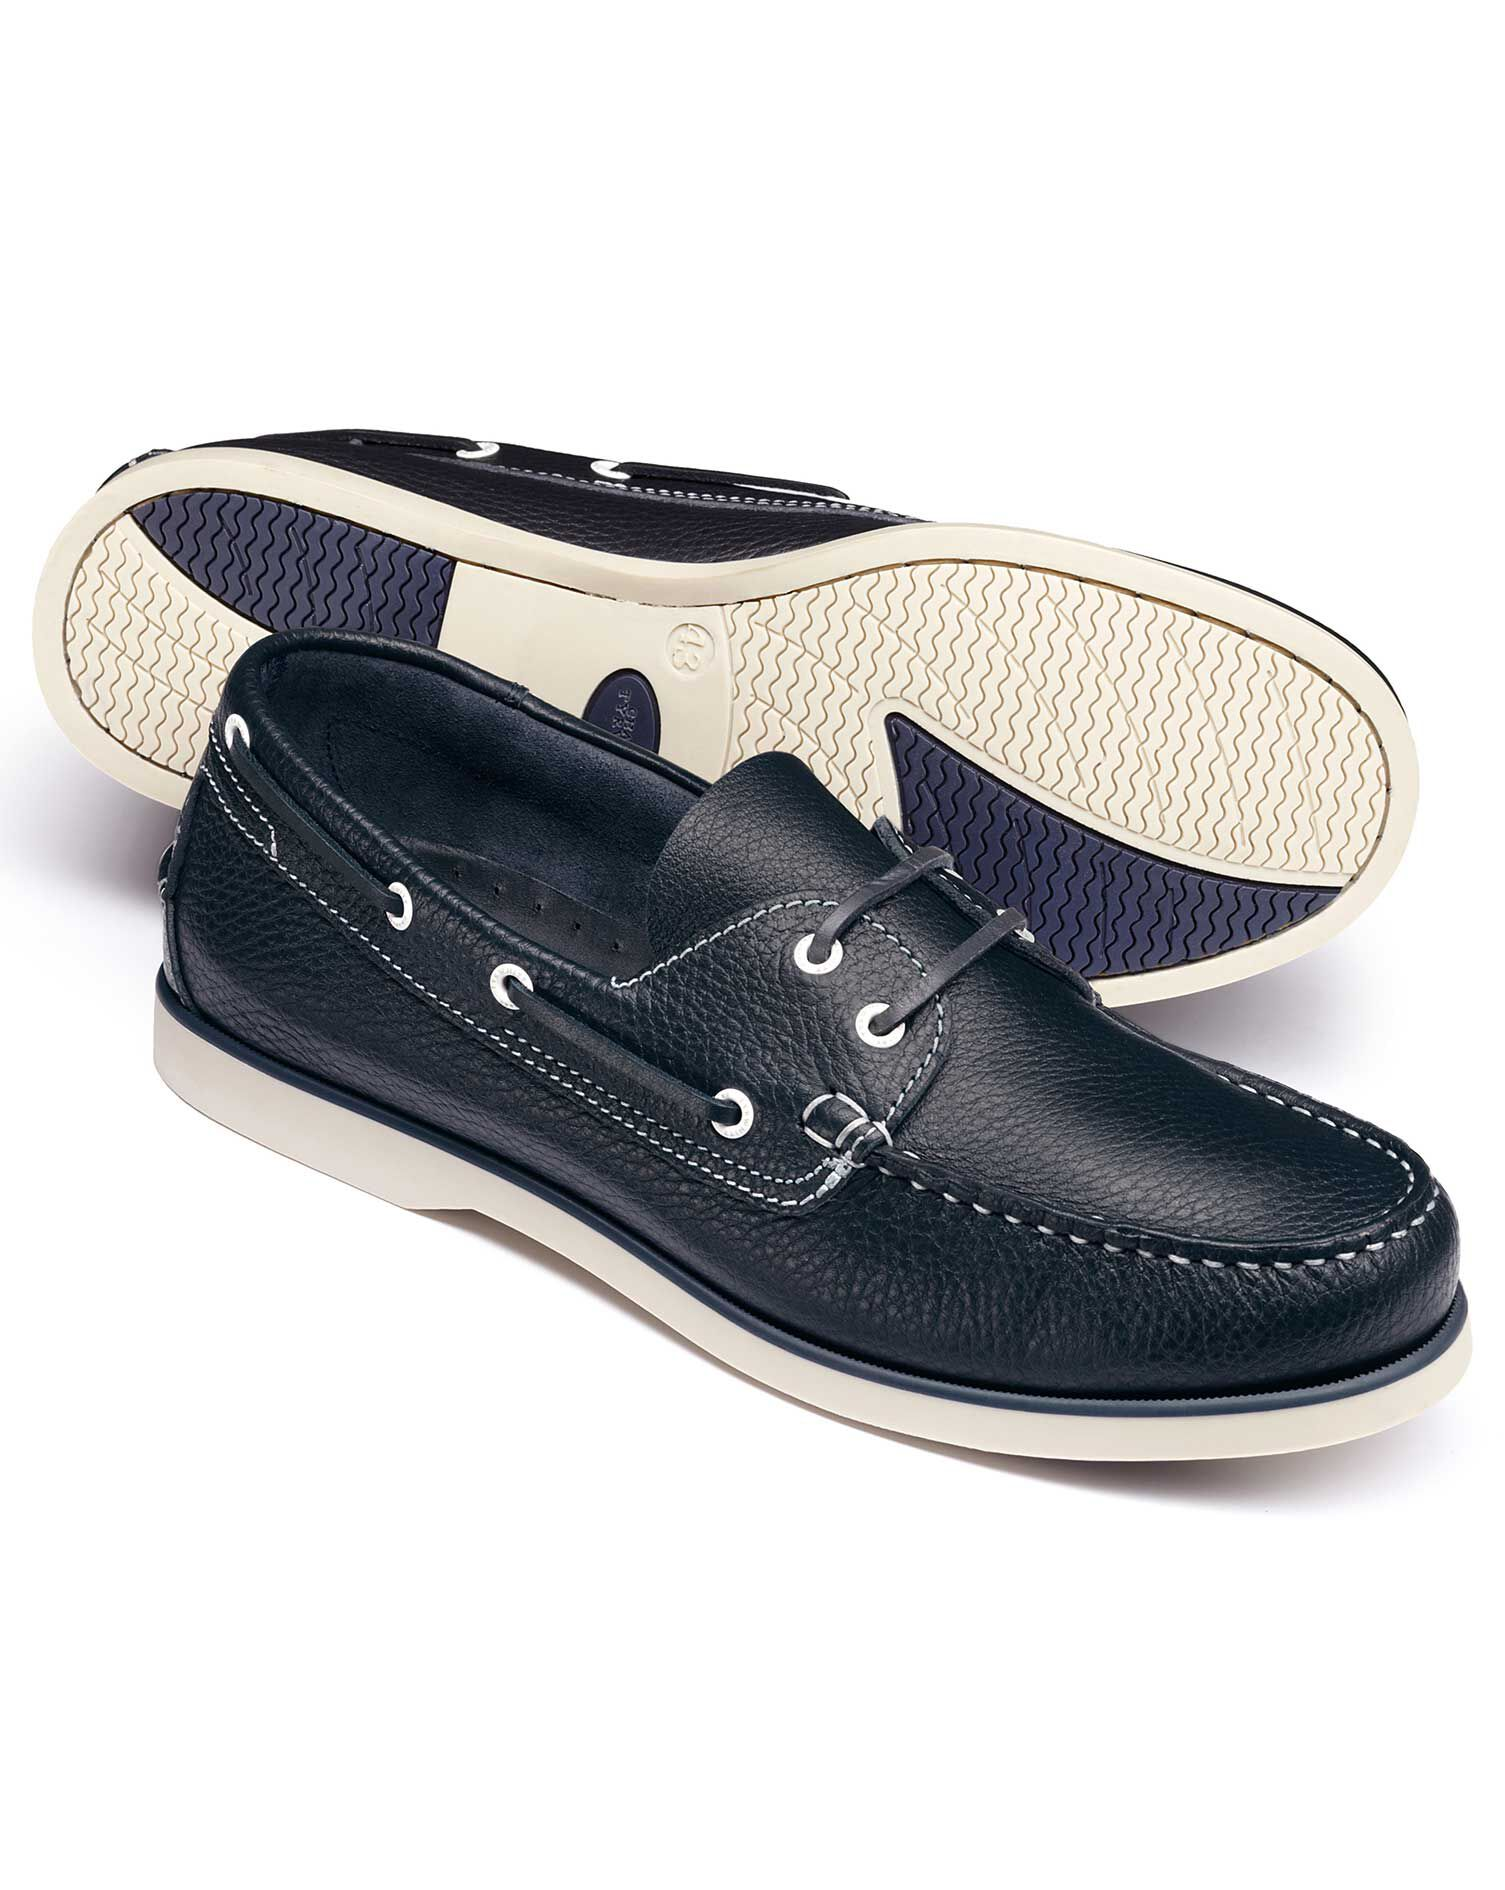 Navy Fowey Boat Shoes Size 10 R by Charles Tyrwhitt